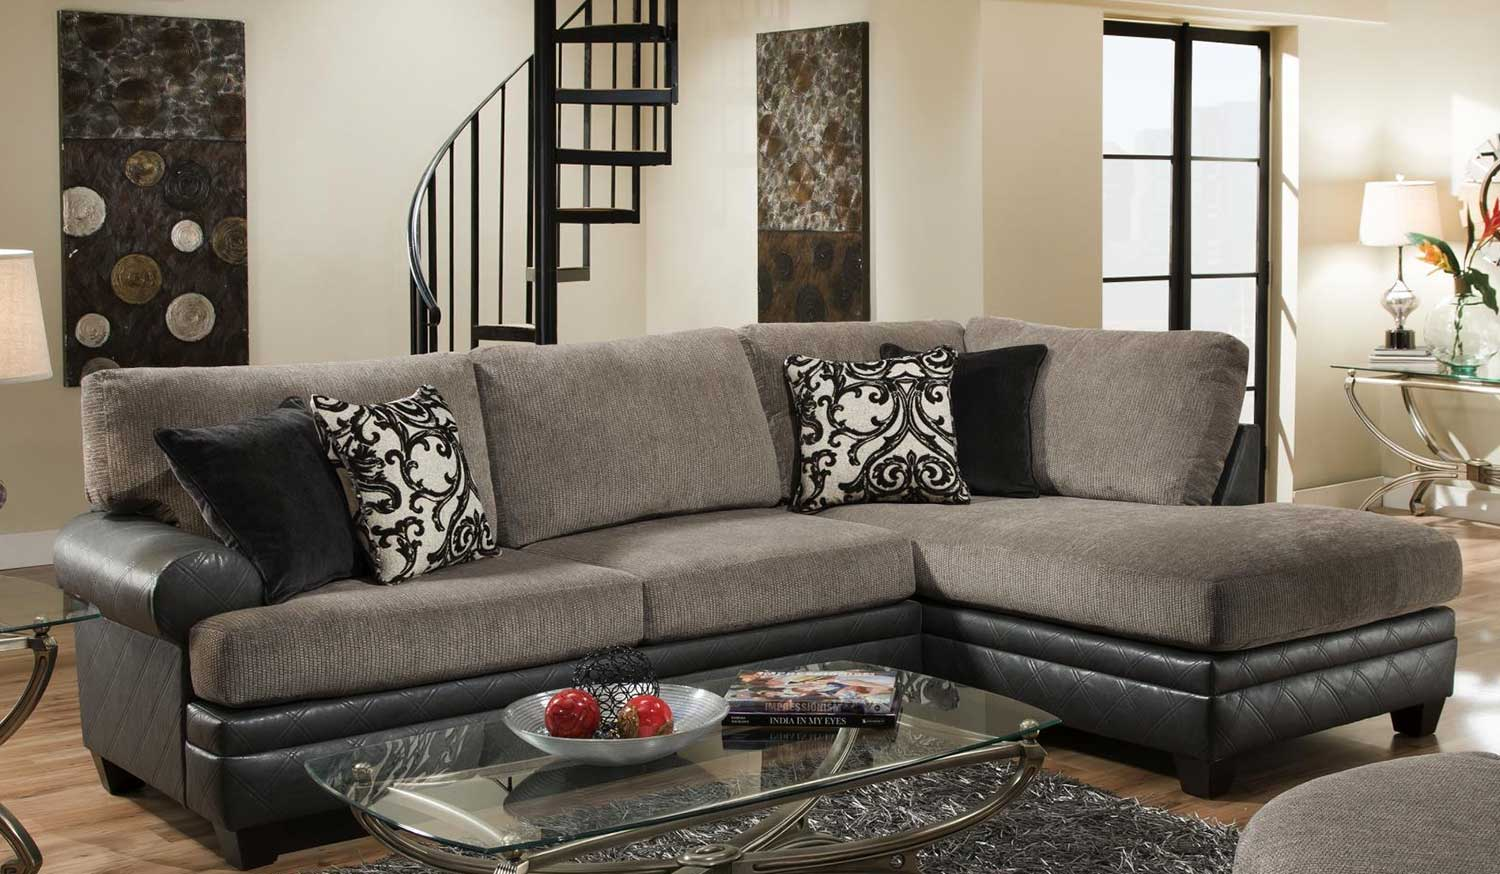 robinson and leather sofa furniture set living room chelsea home sectional square granite chf